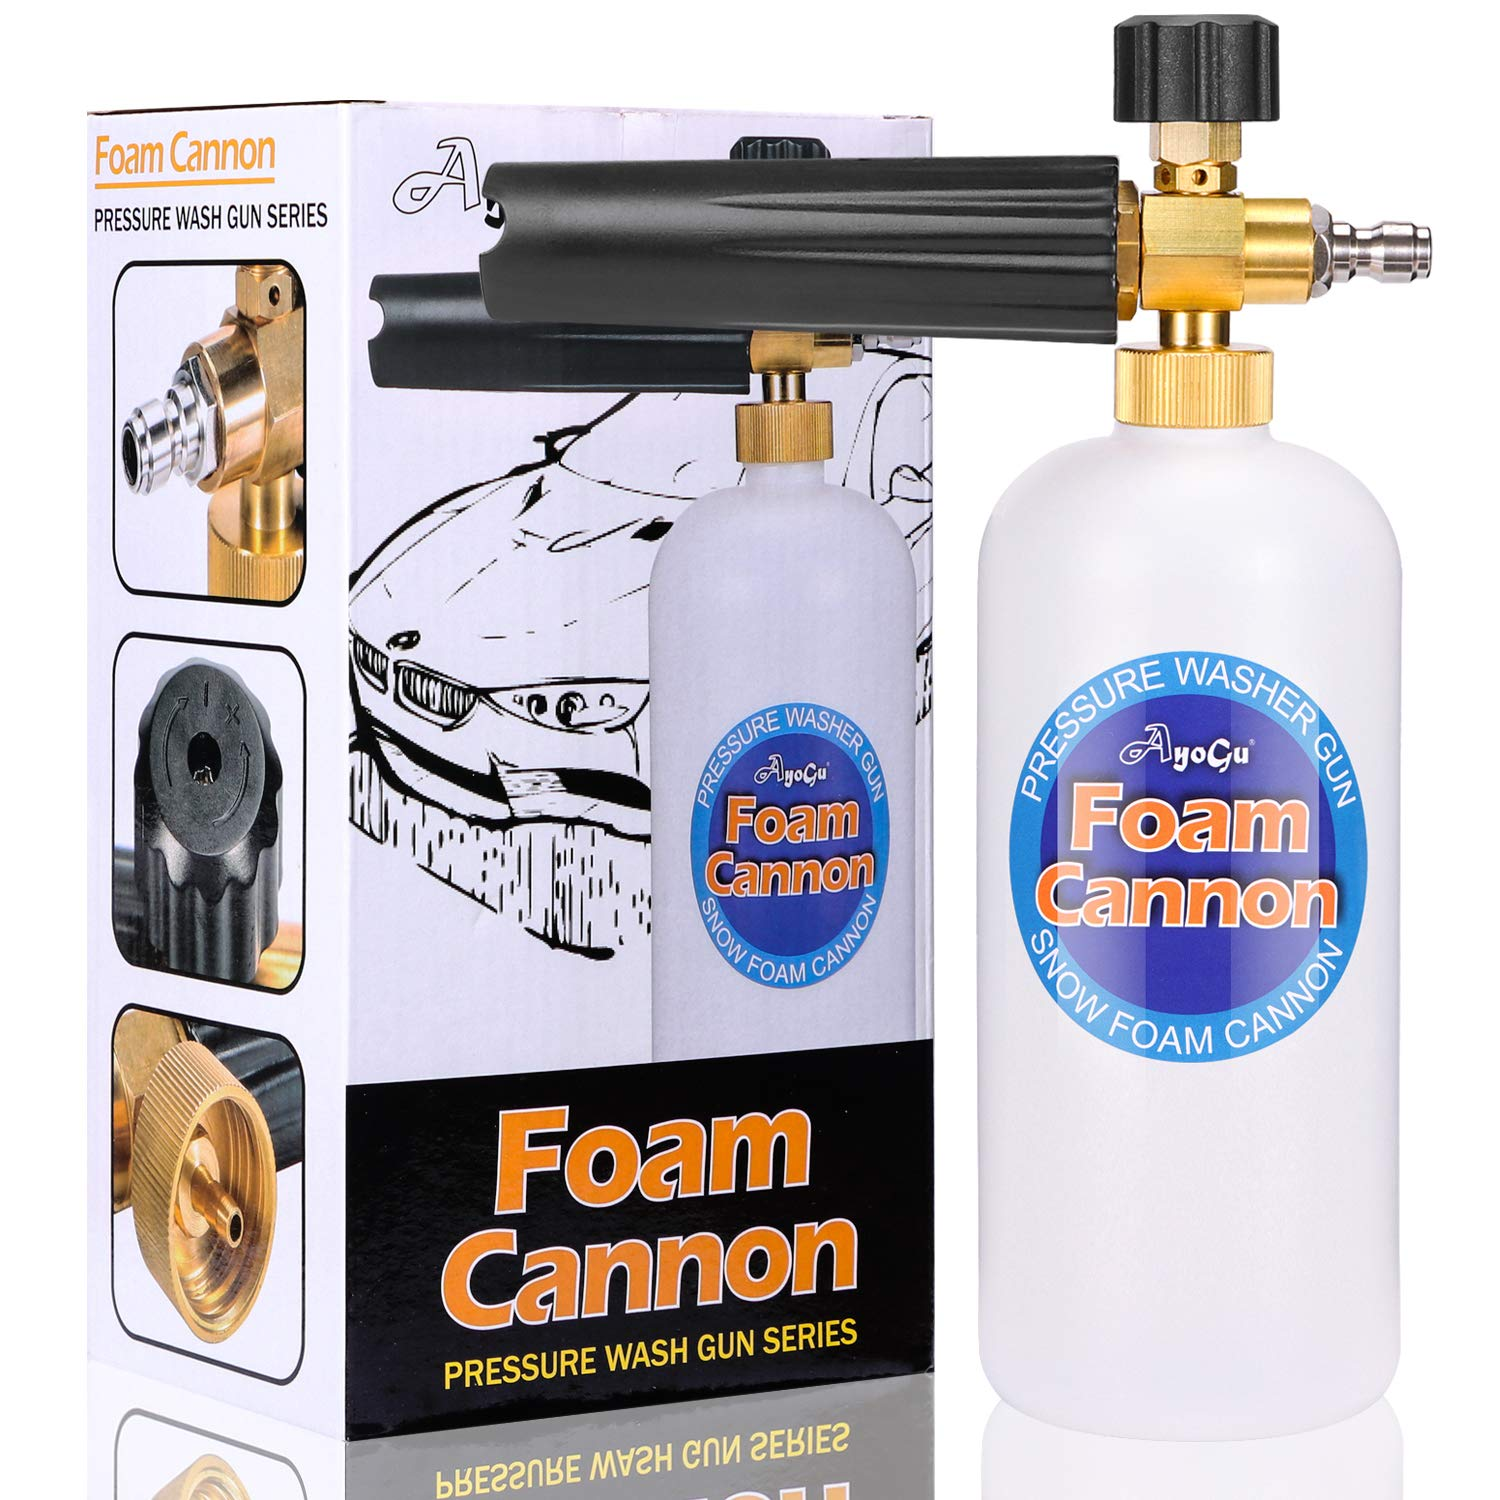 AYOGU1 Foam Cannon 1 Liter Bottle Adjustable Snow Foam Lance with 1/4'' Quick Connector Foam Blaster Improved for Pressure Washer